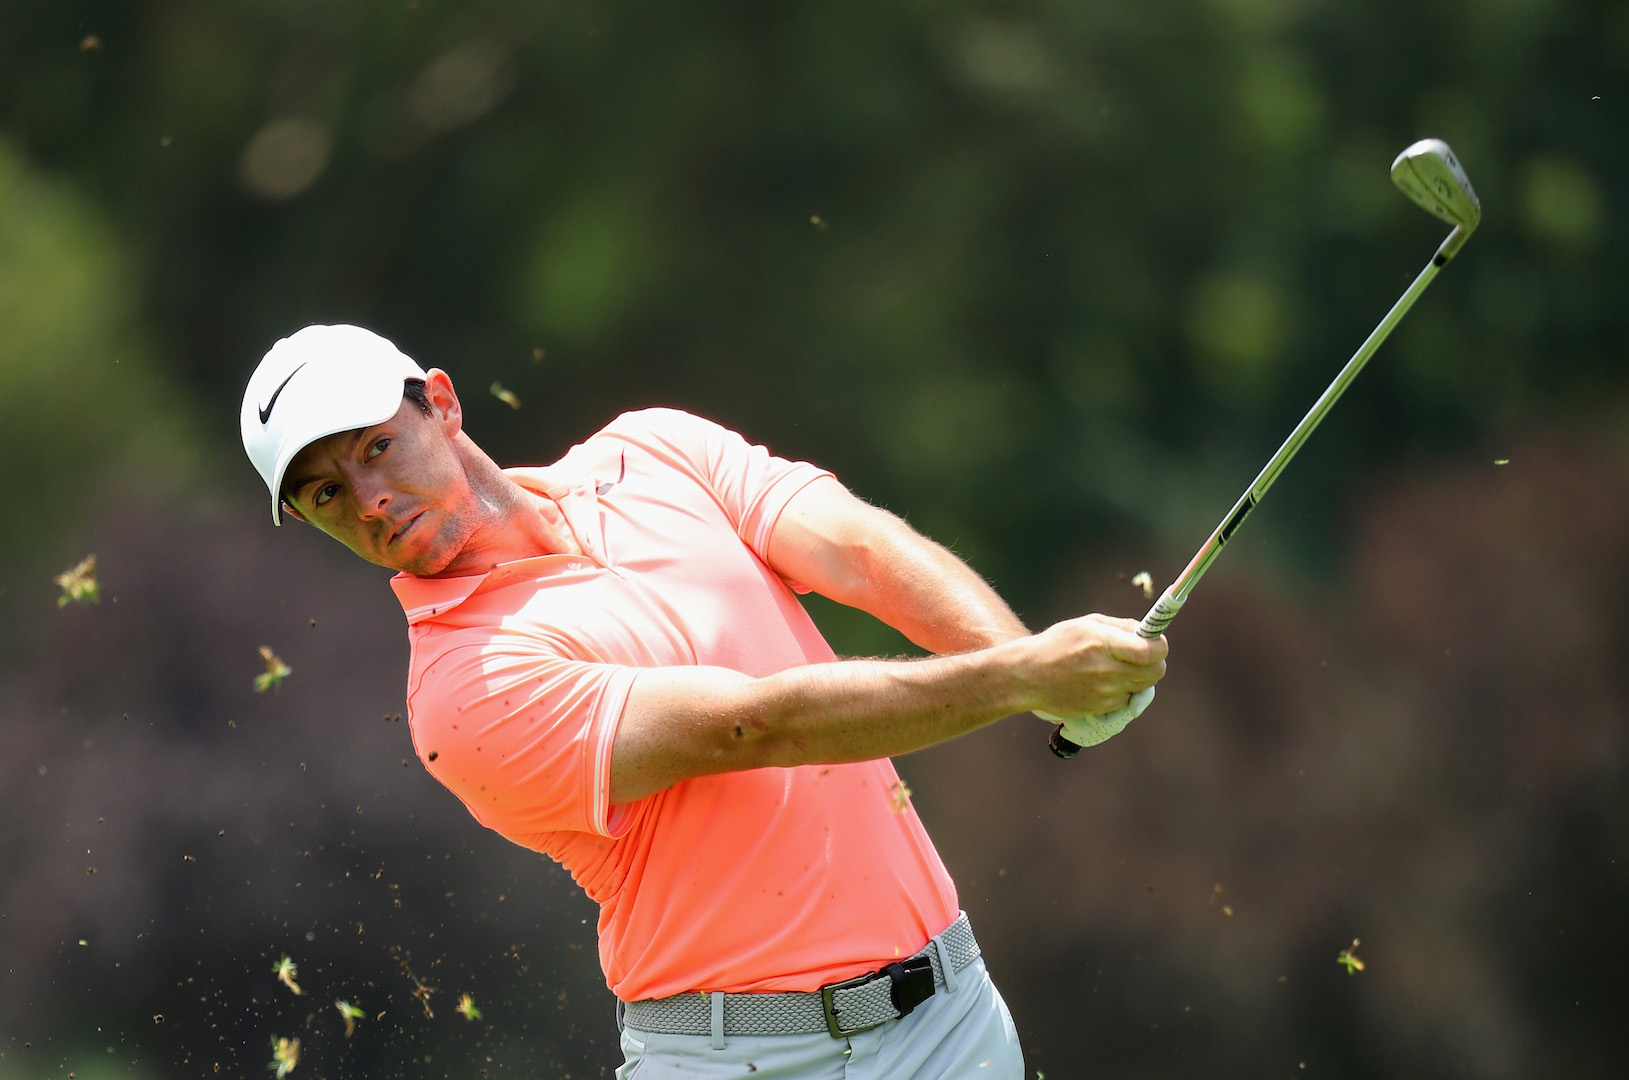 Injury rules Rory McIlroy out of Abu Dhabi Championship